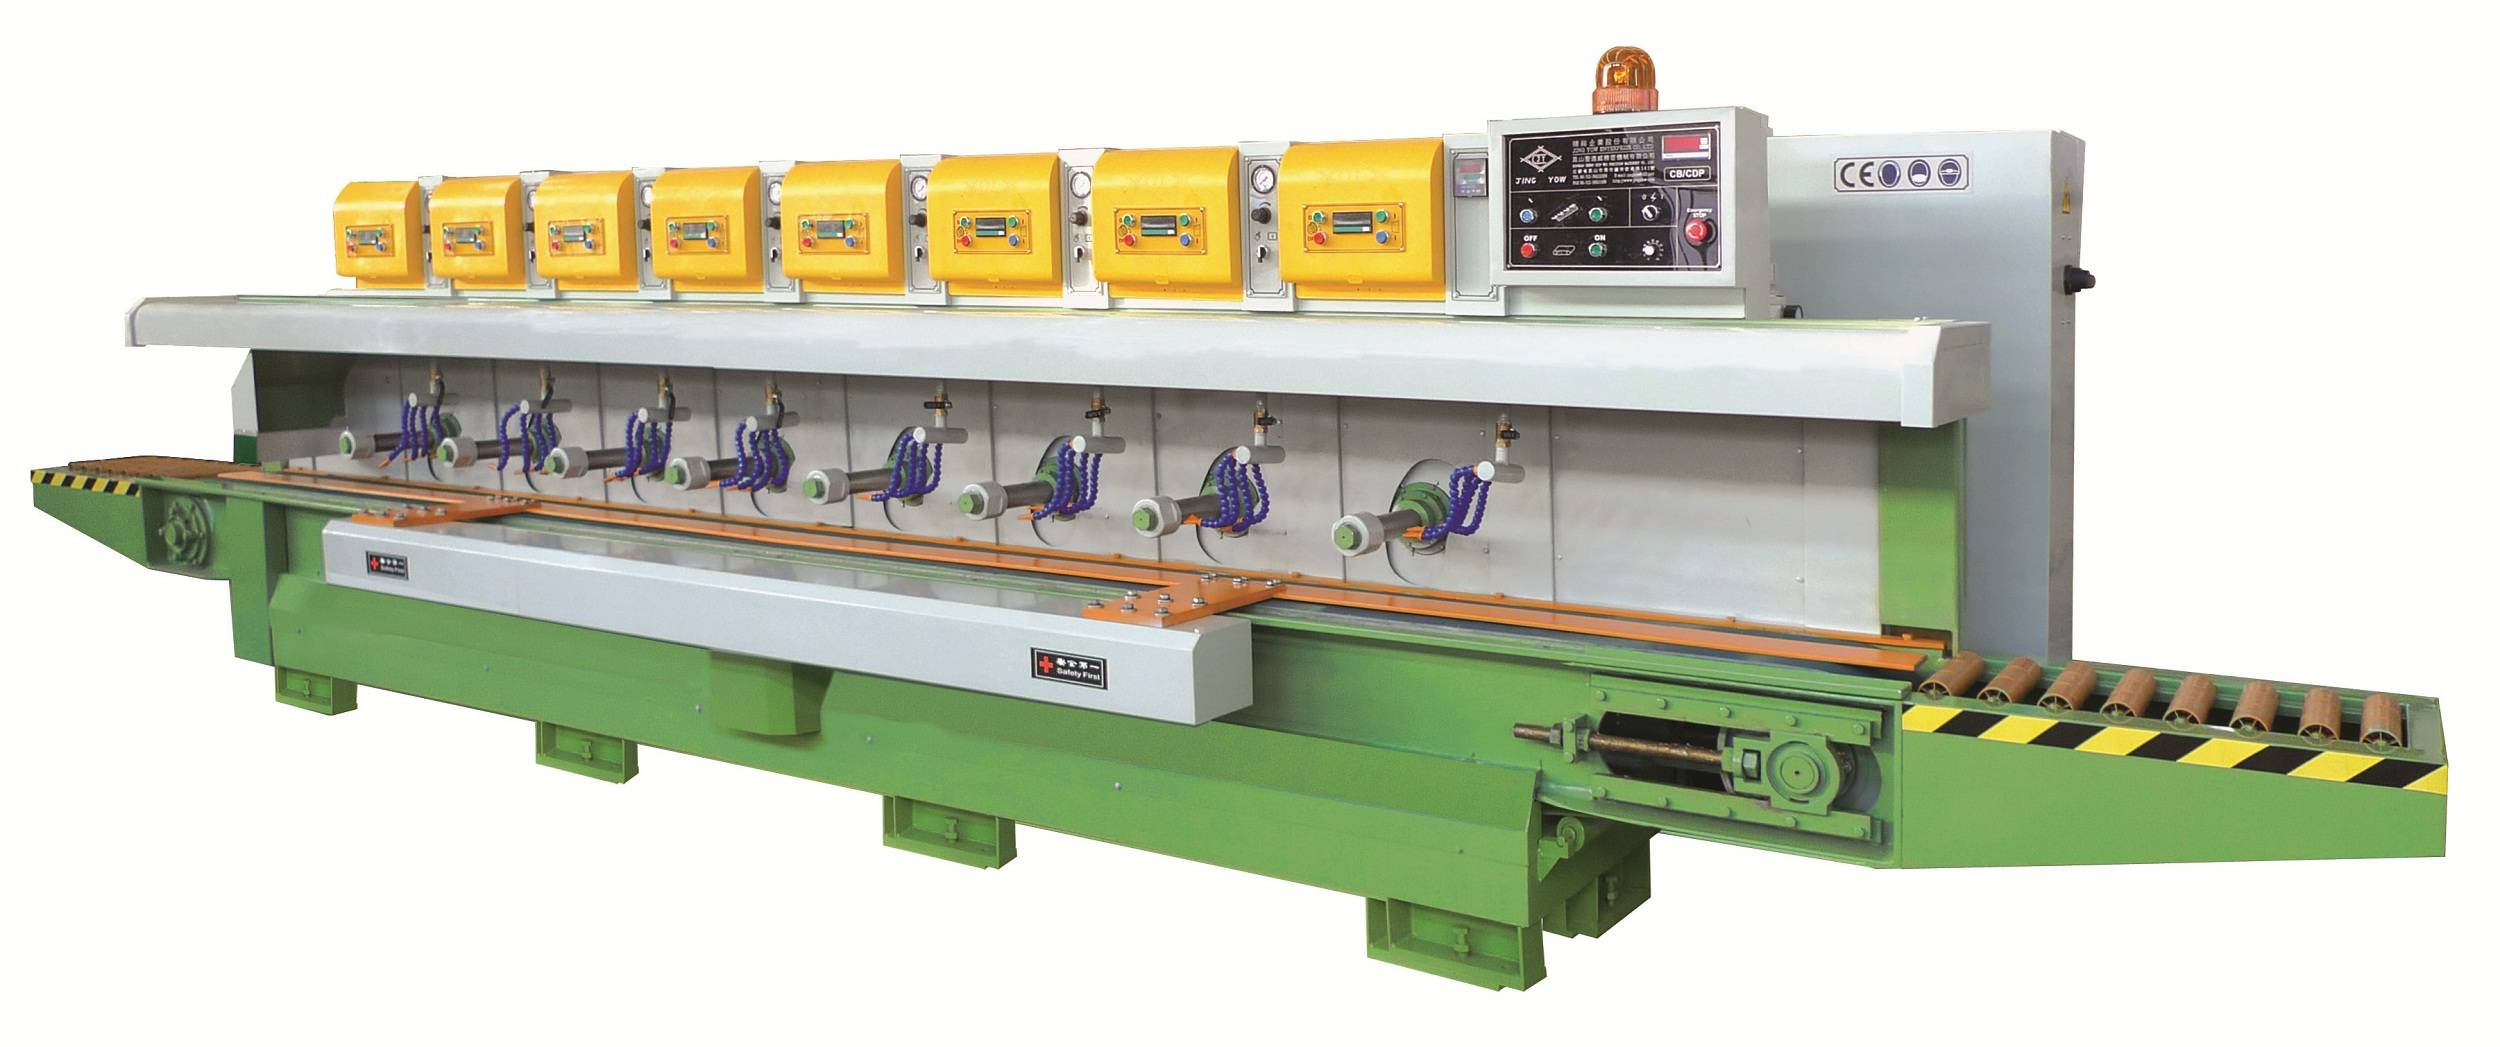 8 Heads Line Processing Machine(Polishing) CB/CDPM-8